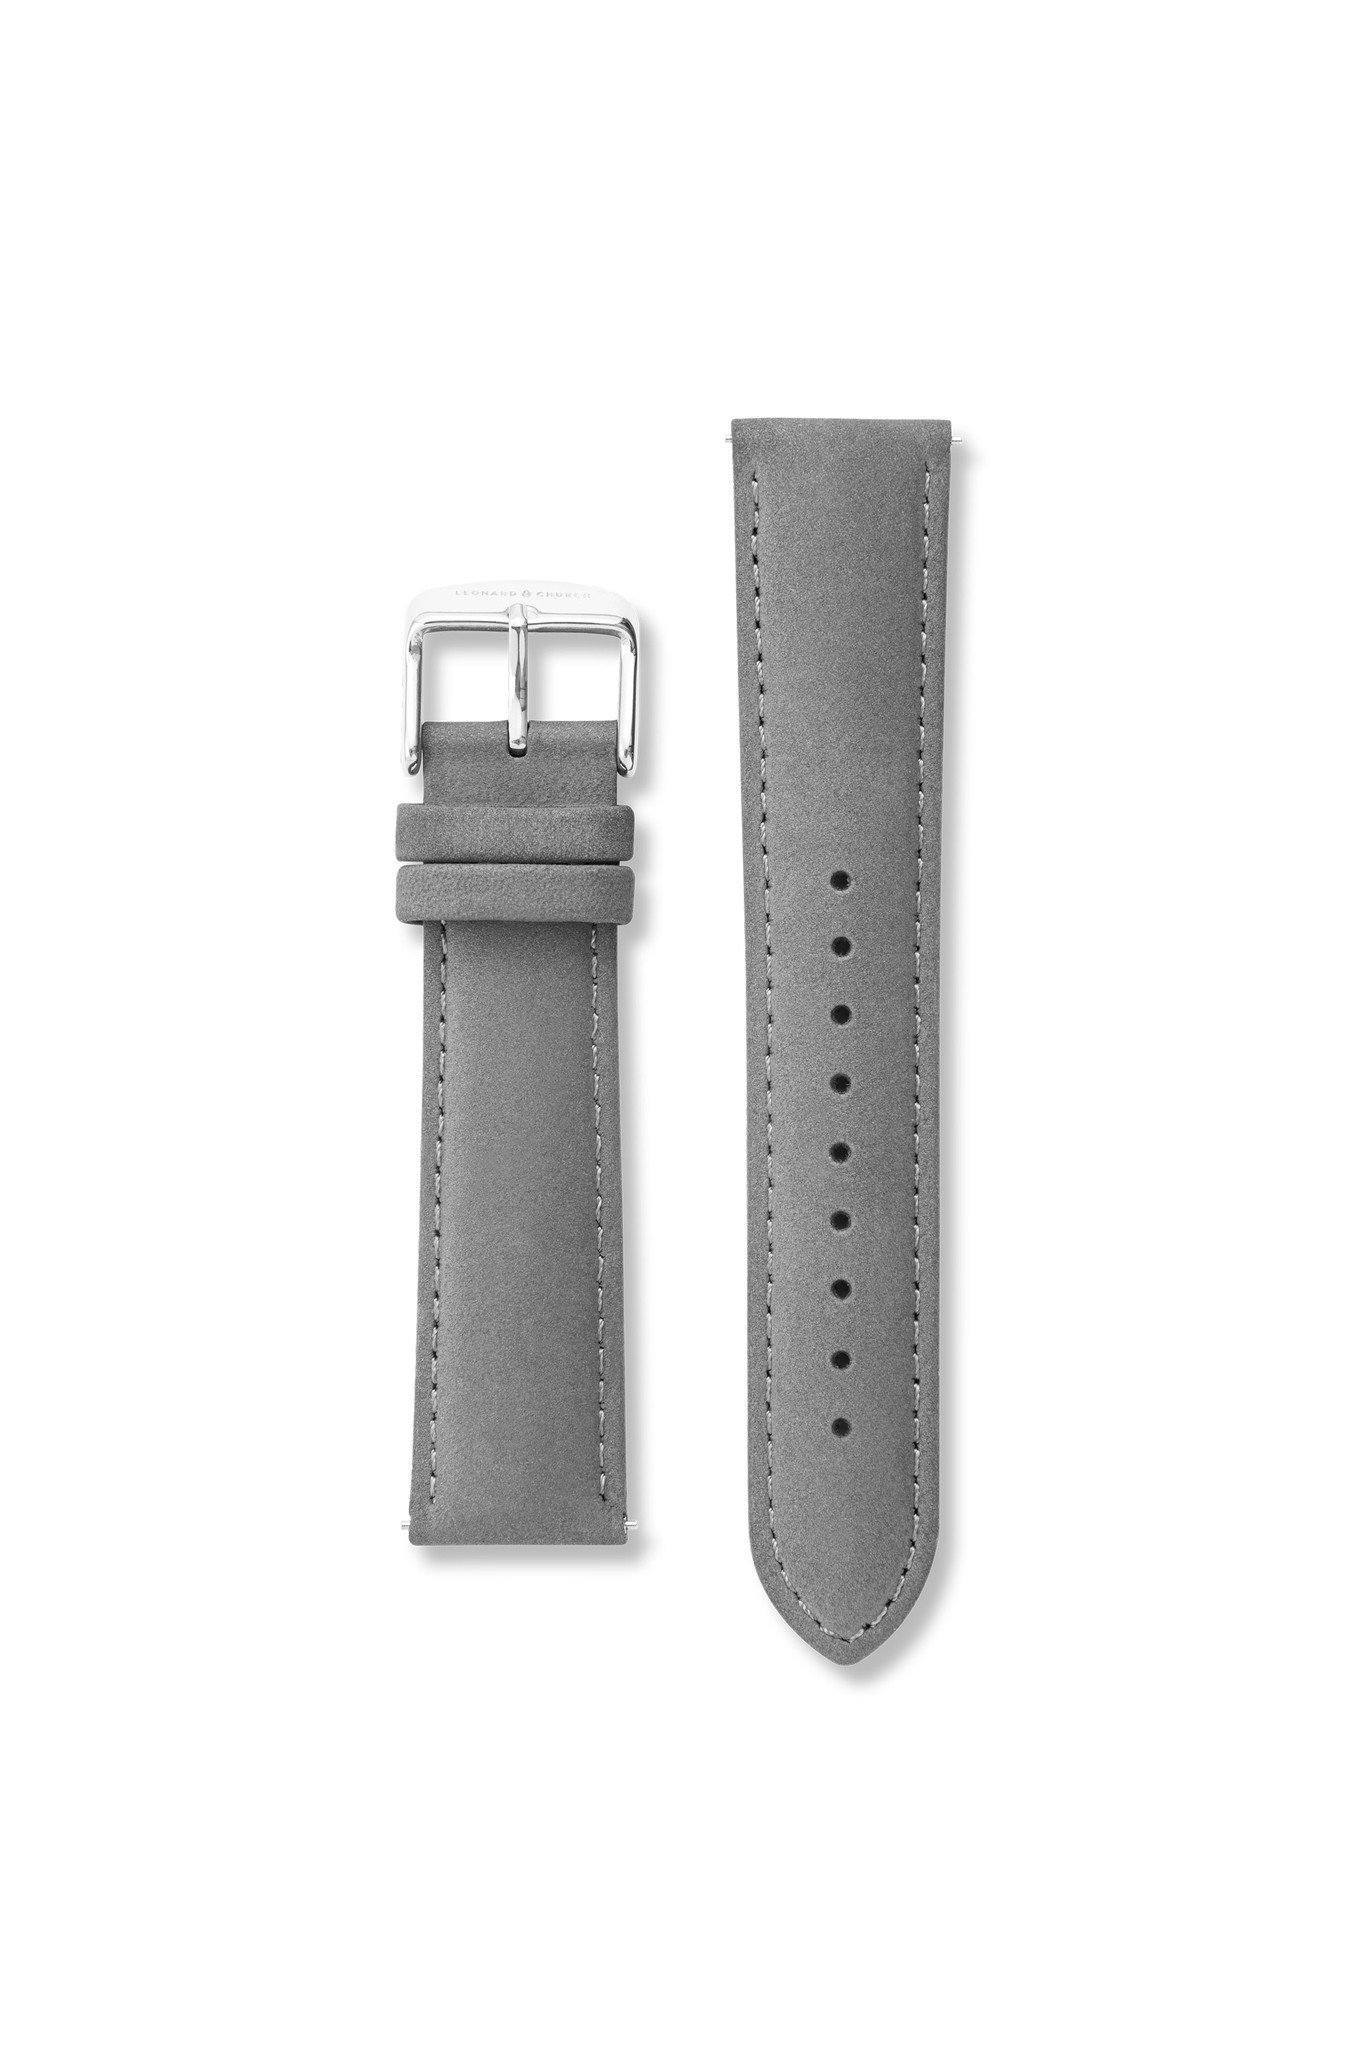 Strap - Suede Leather Slate / Silver Strap